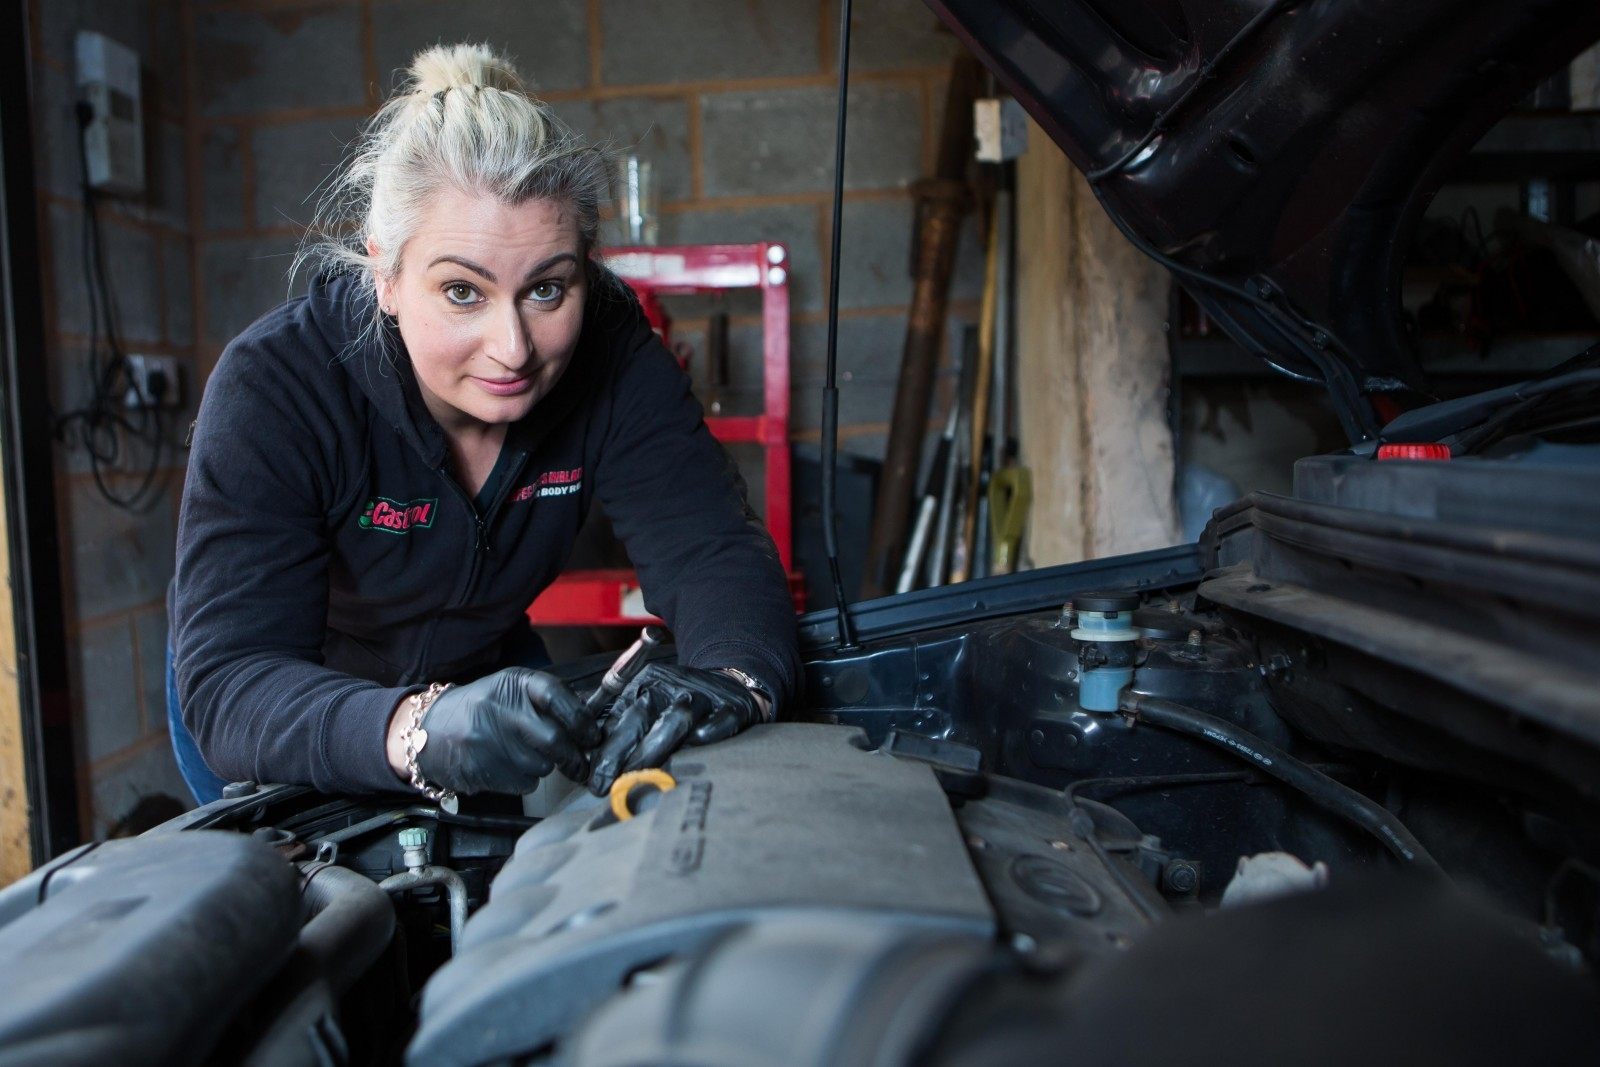 A Female Mechanic Is Hoping To Inspire Girls To Get Into The Traditionally All-Male World Of Vehicle Repair